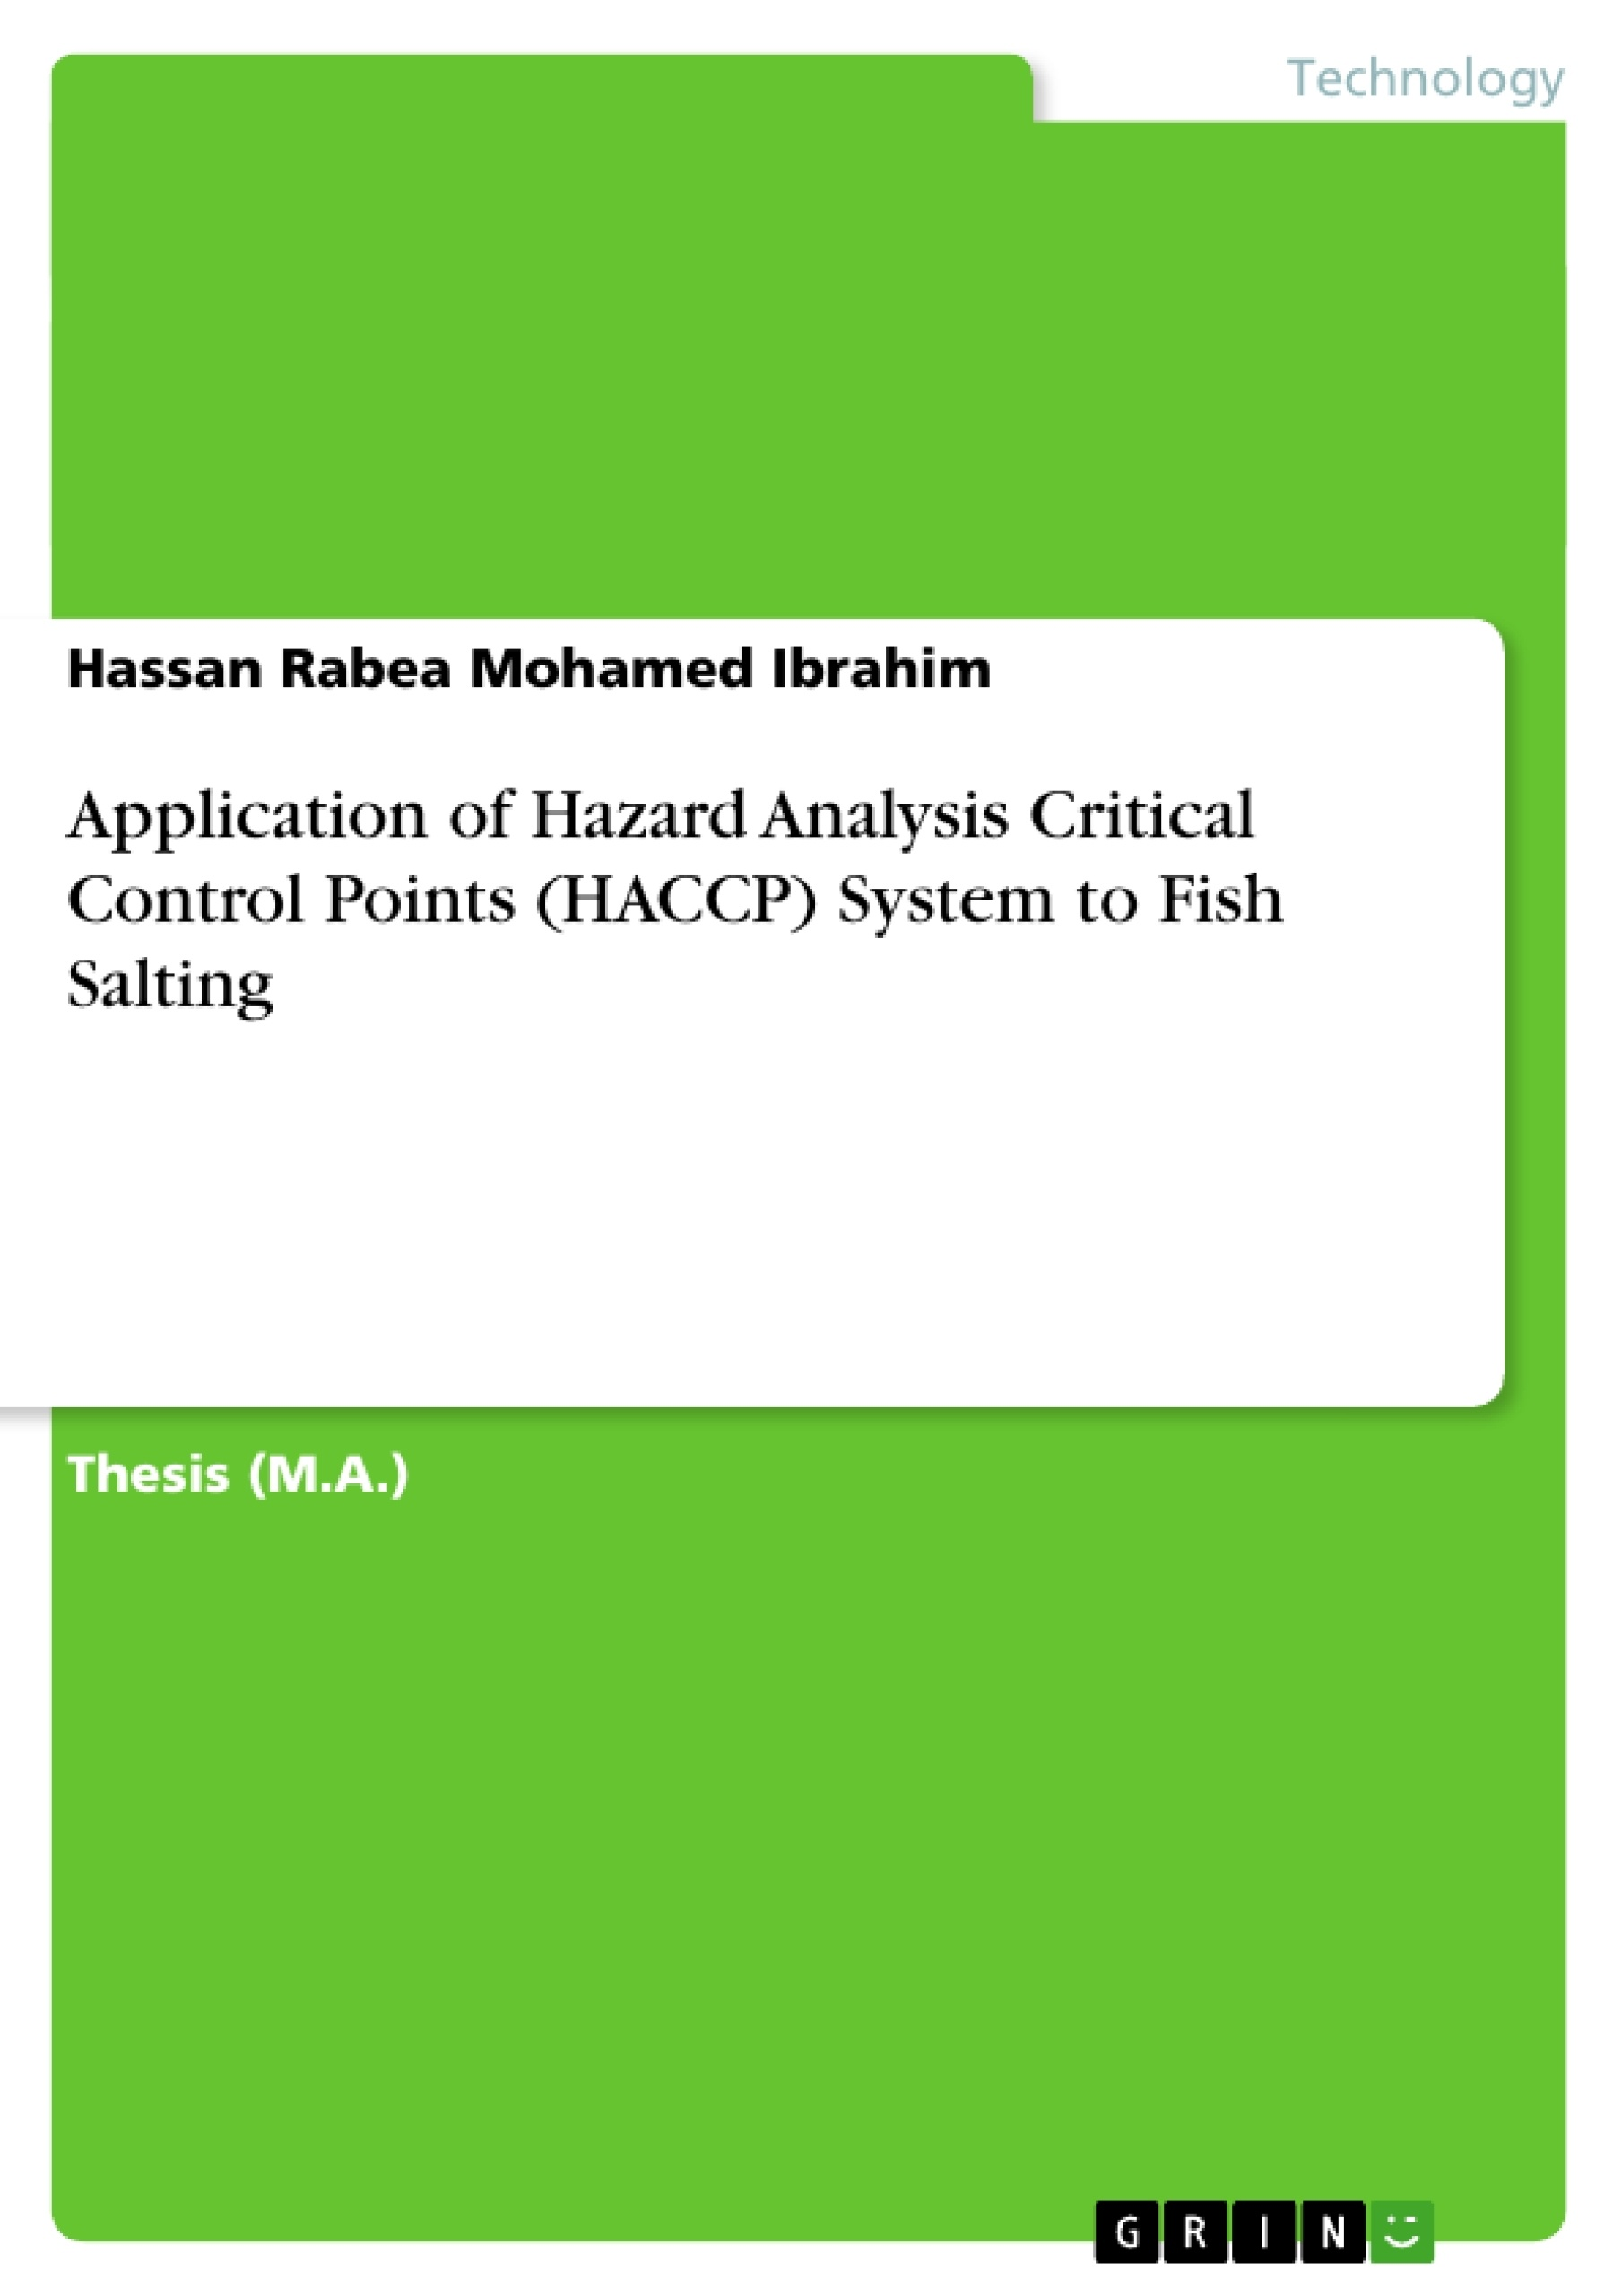 GRIN - Application of Hazard Analysis Critical Control Points (HACCP)  System to Fish Salting